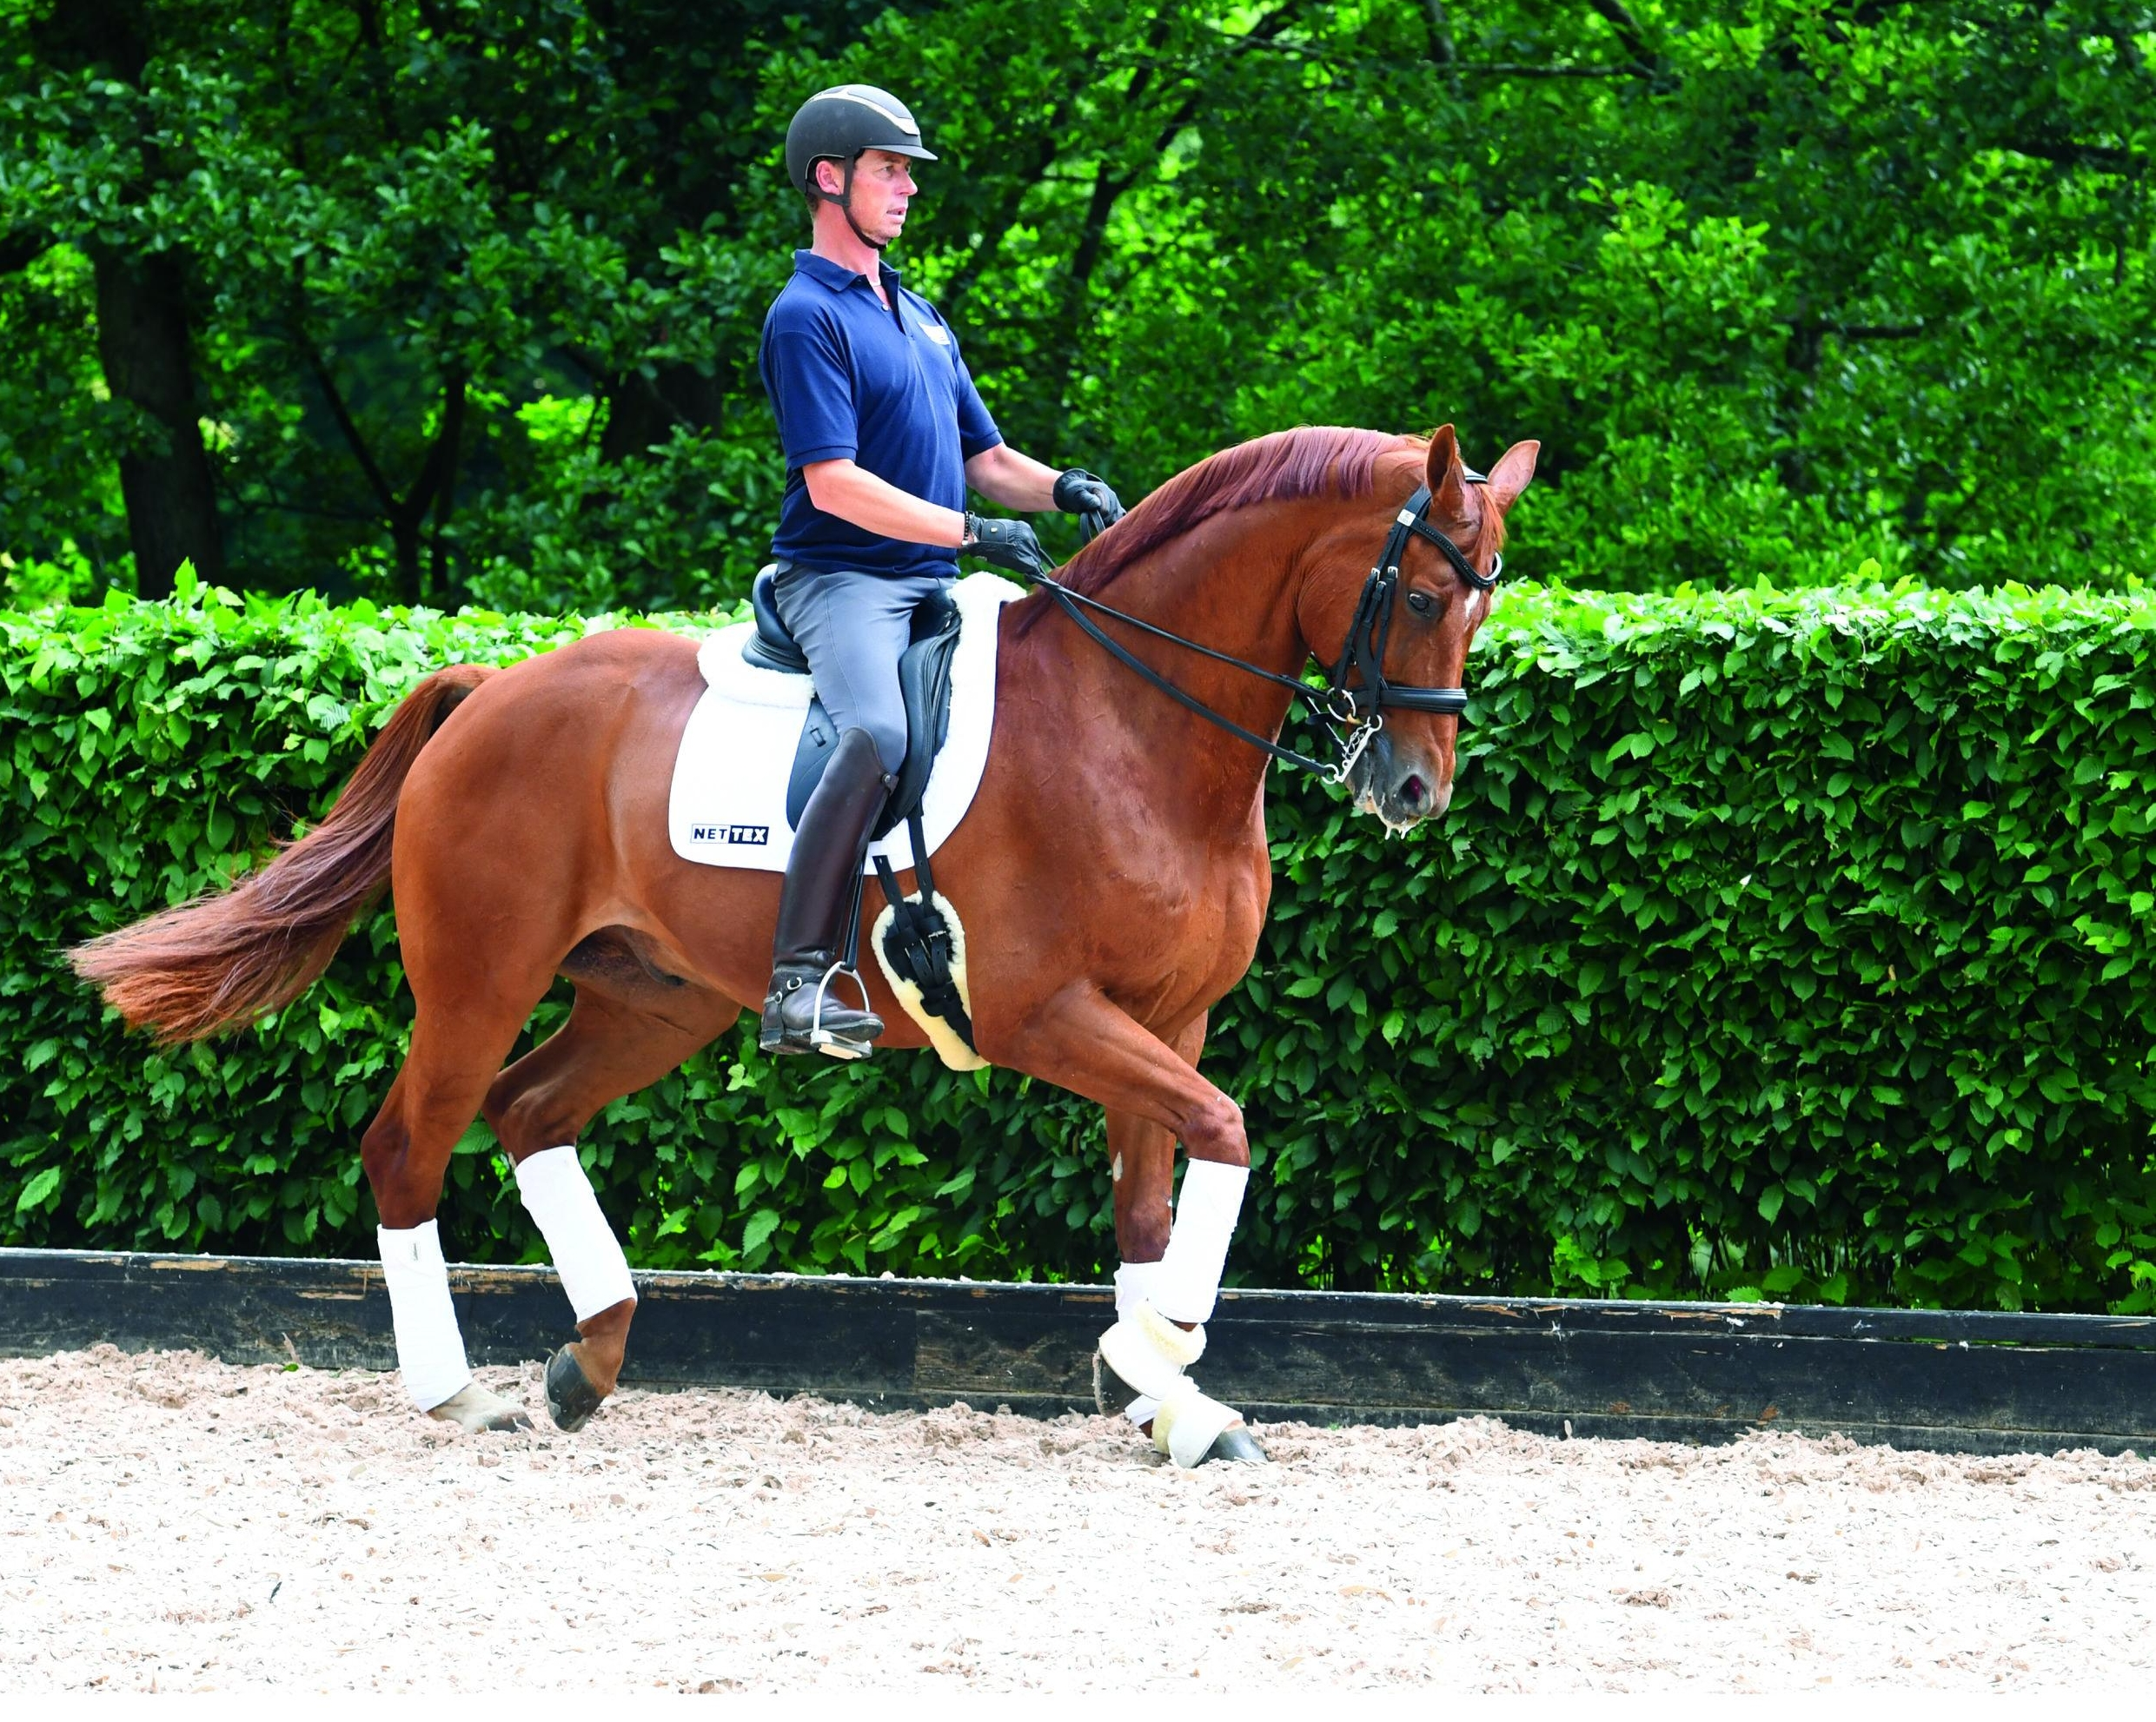 The Nettex Joint Care Range is the choice of top riders, such as Olympic gold medallist, Carl Hester.